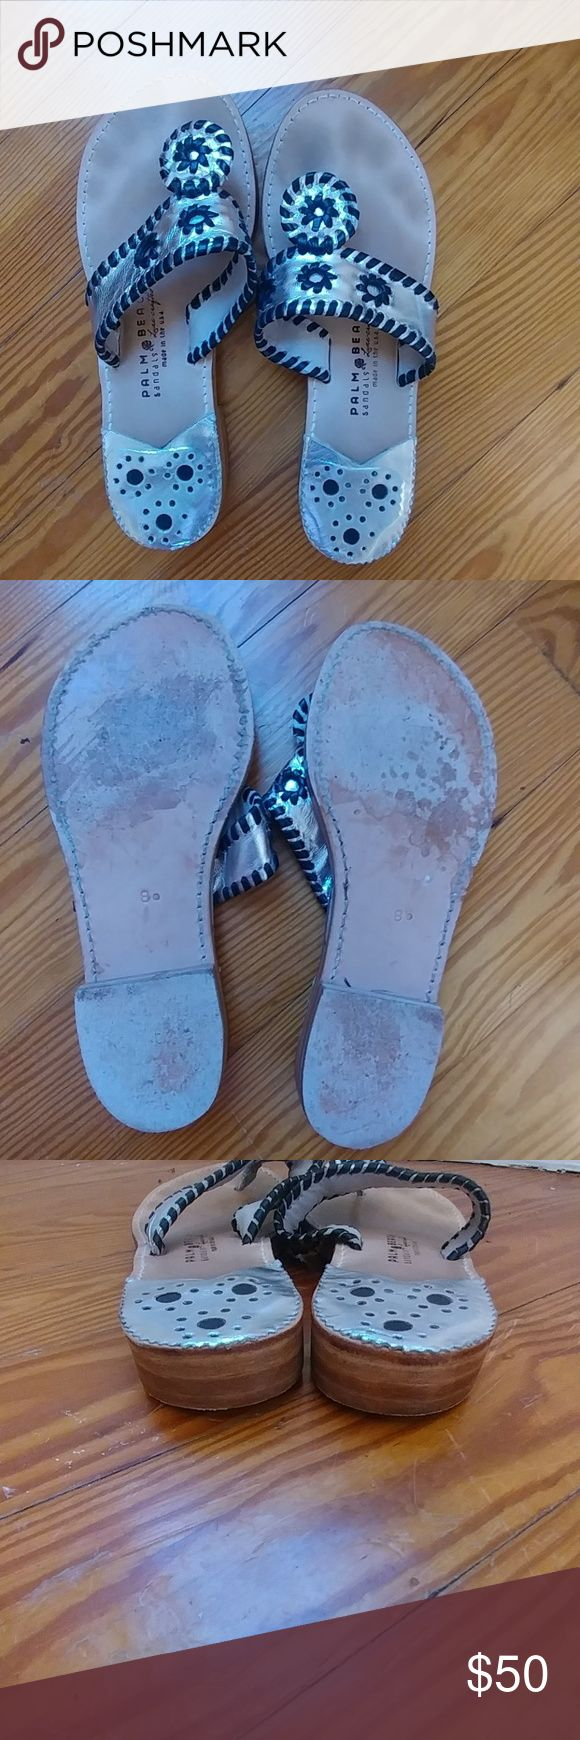 Palm Beach sandals Jack Rogers Style sandals. Silver and black. Good condition! Size 8 palm beach Shoes